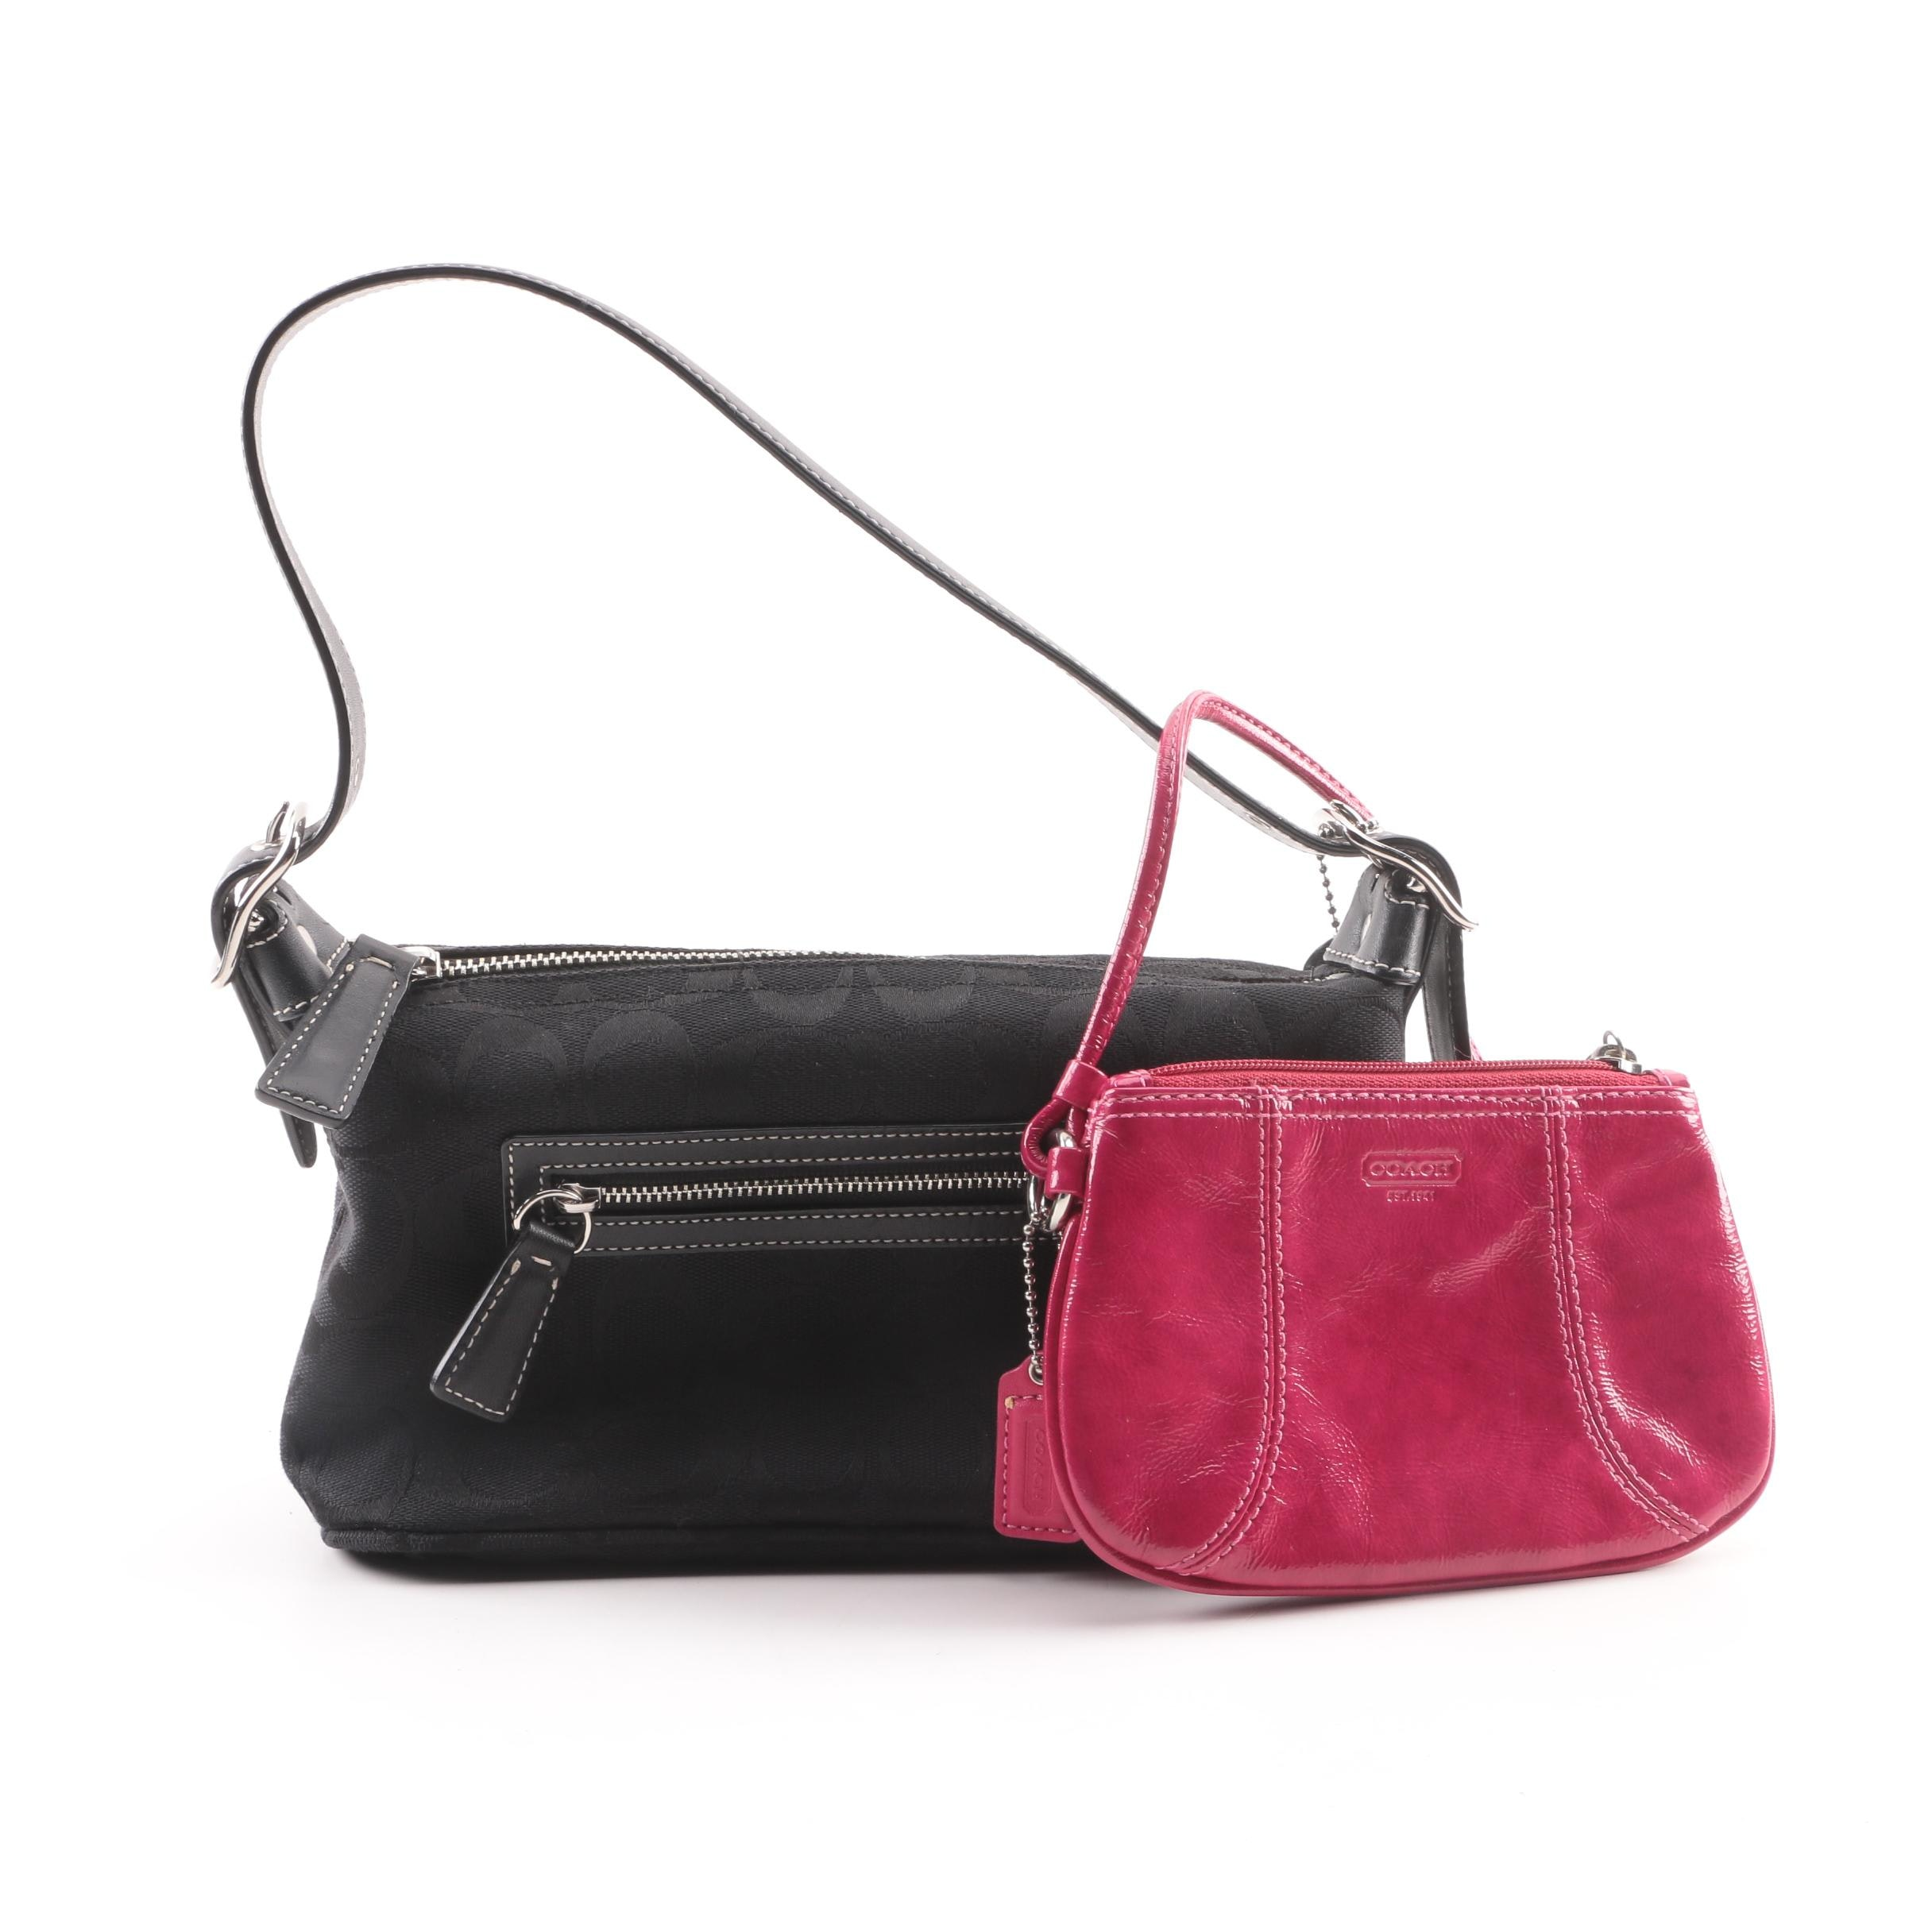 Coach Signature Black Canvas Demi Hobo Bag with Pink Patent Leather Wristlet